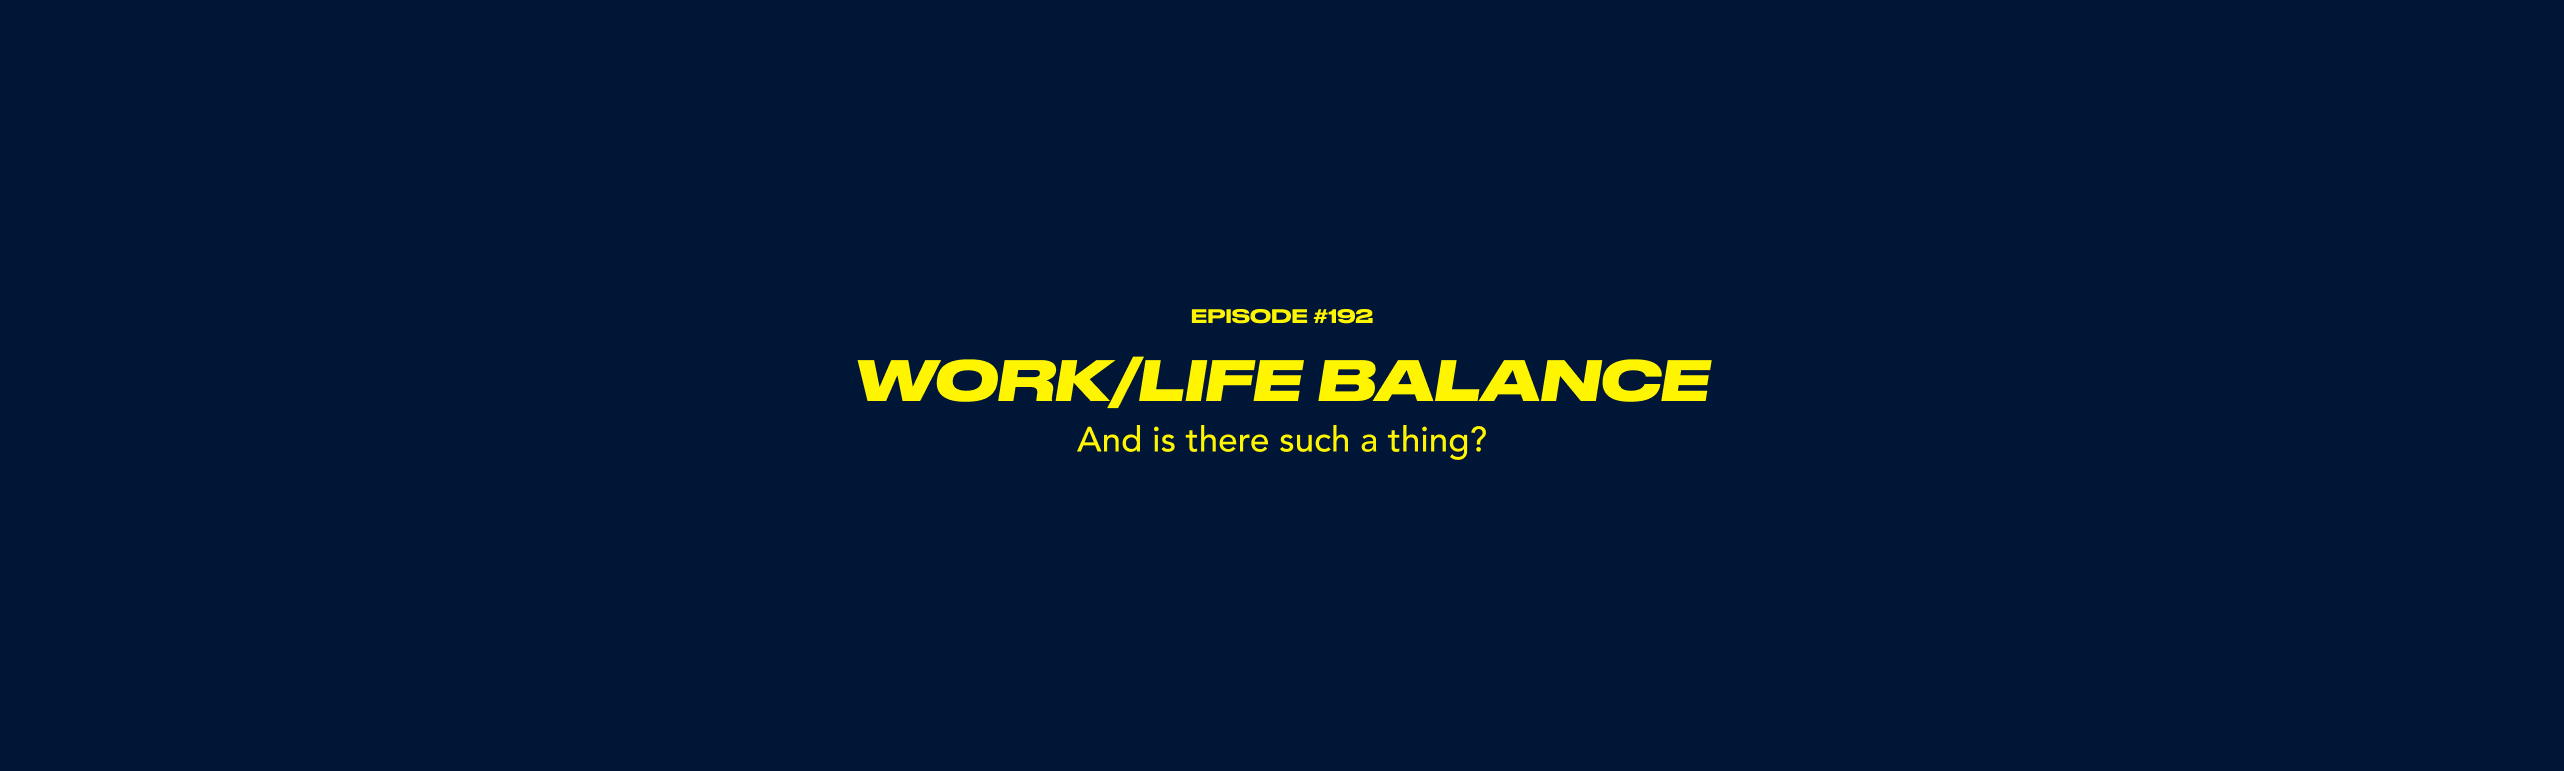 Is there such thing as work/life balance?